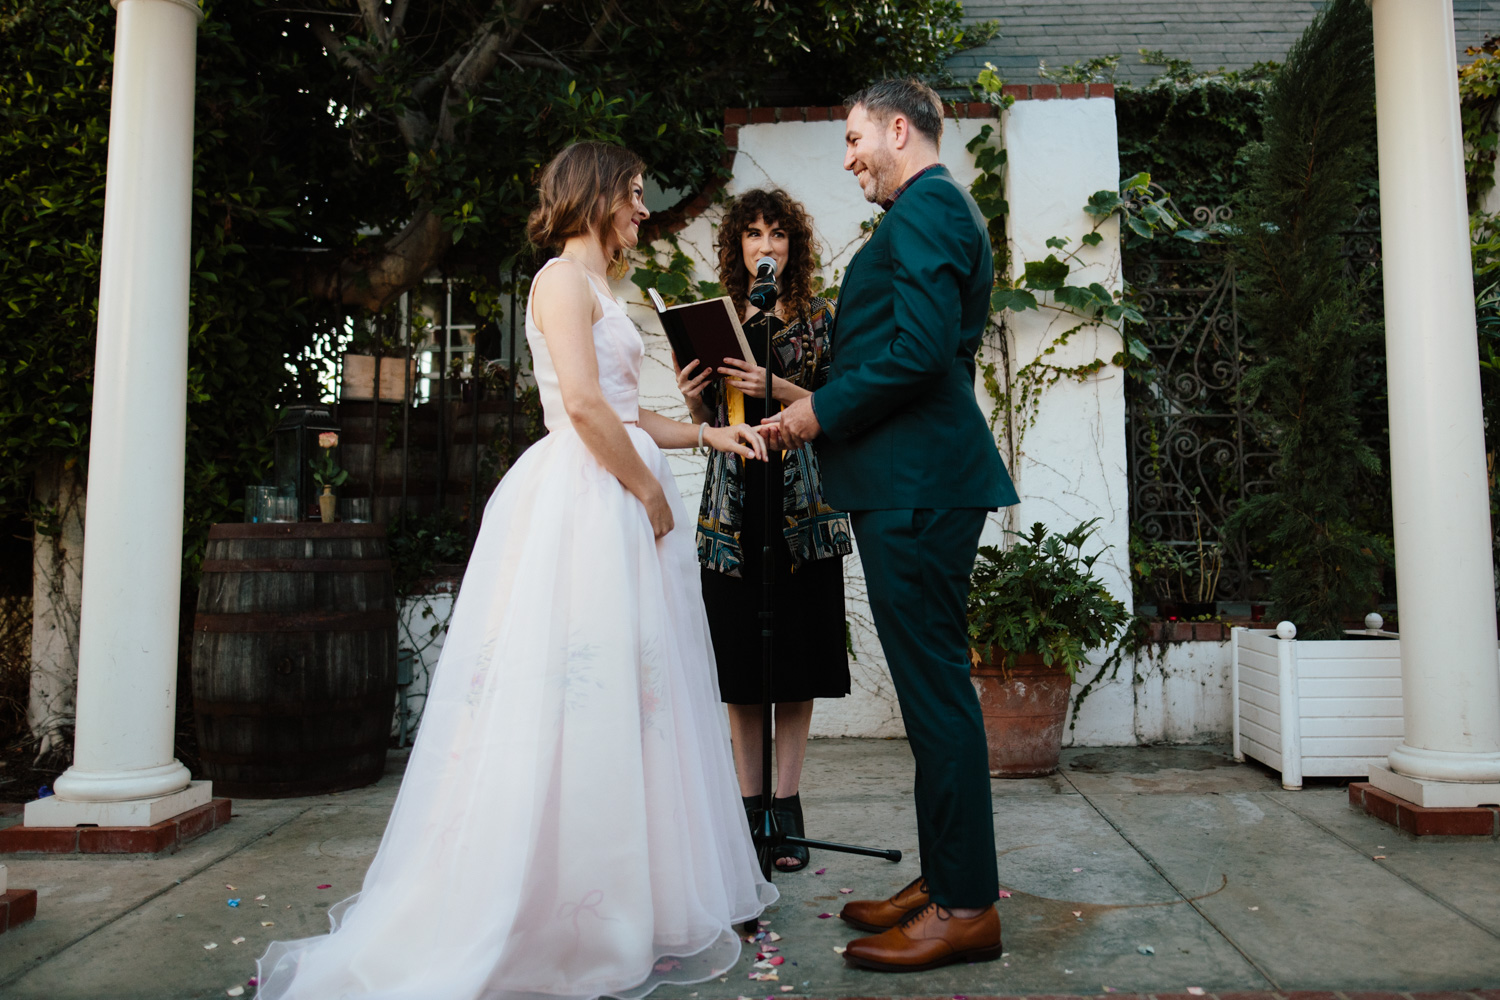 Riverside County Wedding Photographer, Five Crowns - The Gathering Season x weareleoandkat 040.JPG